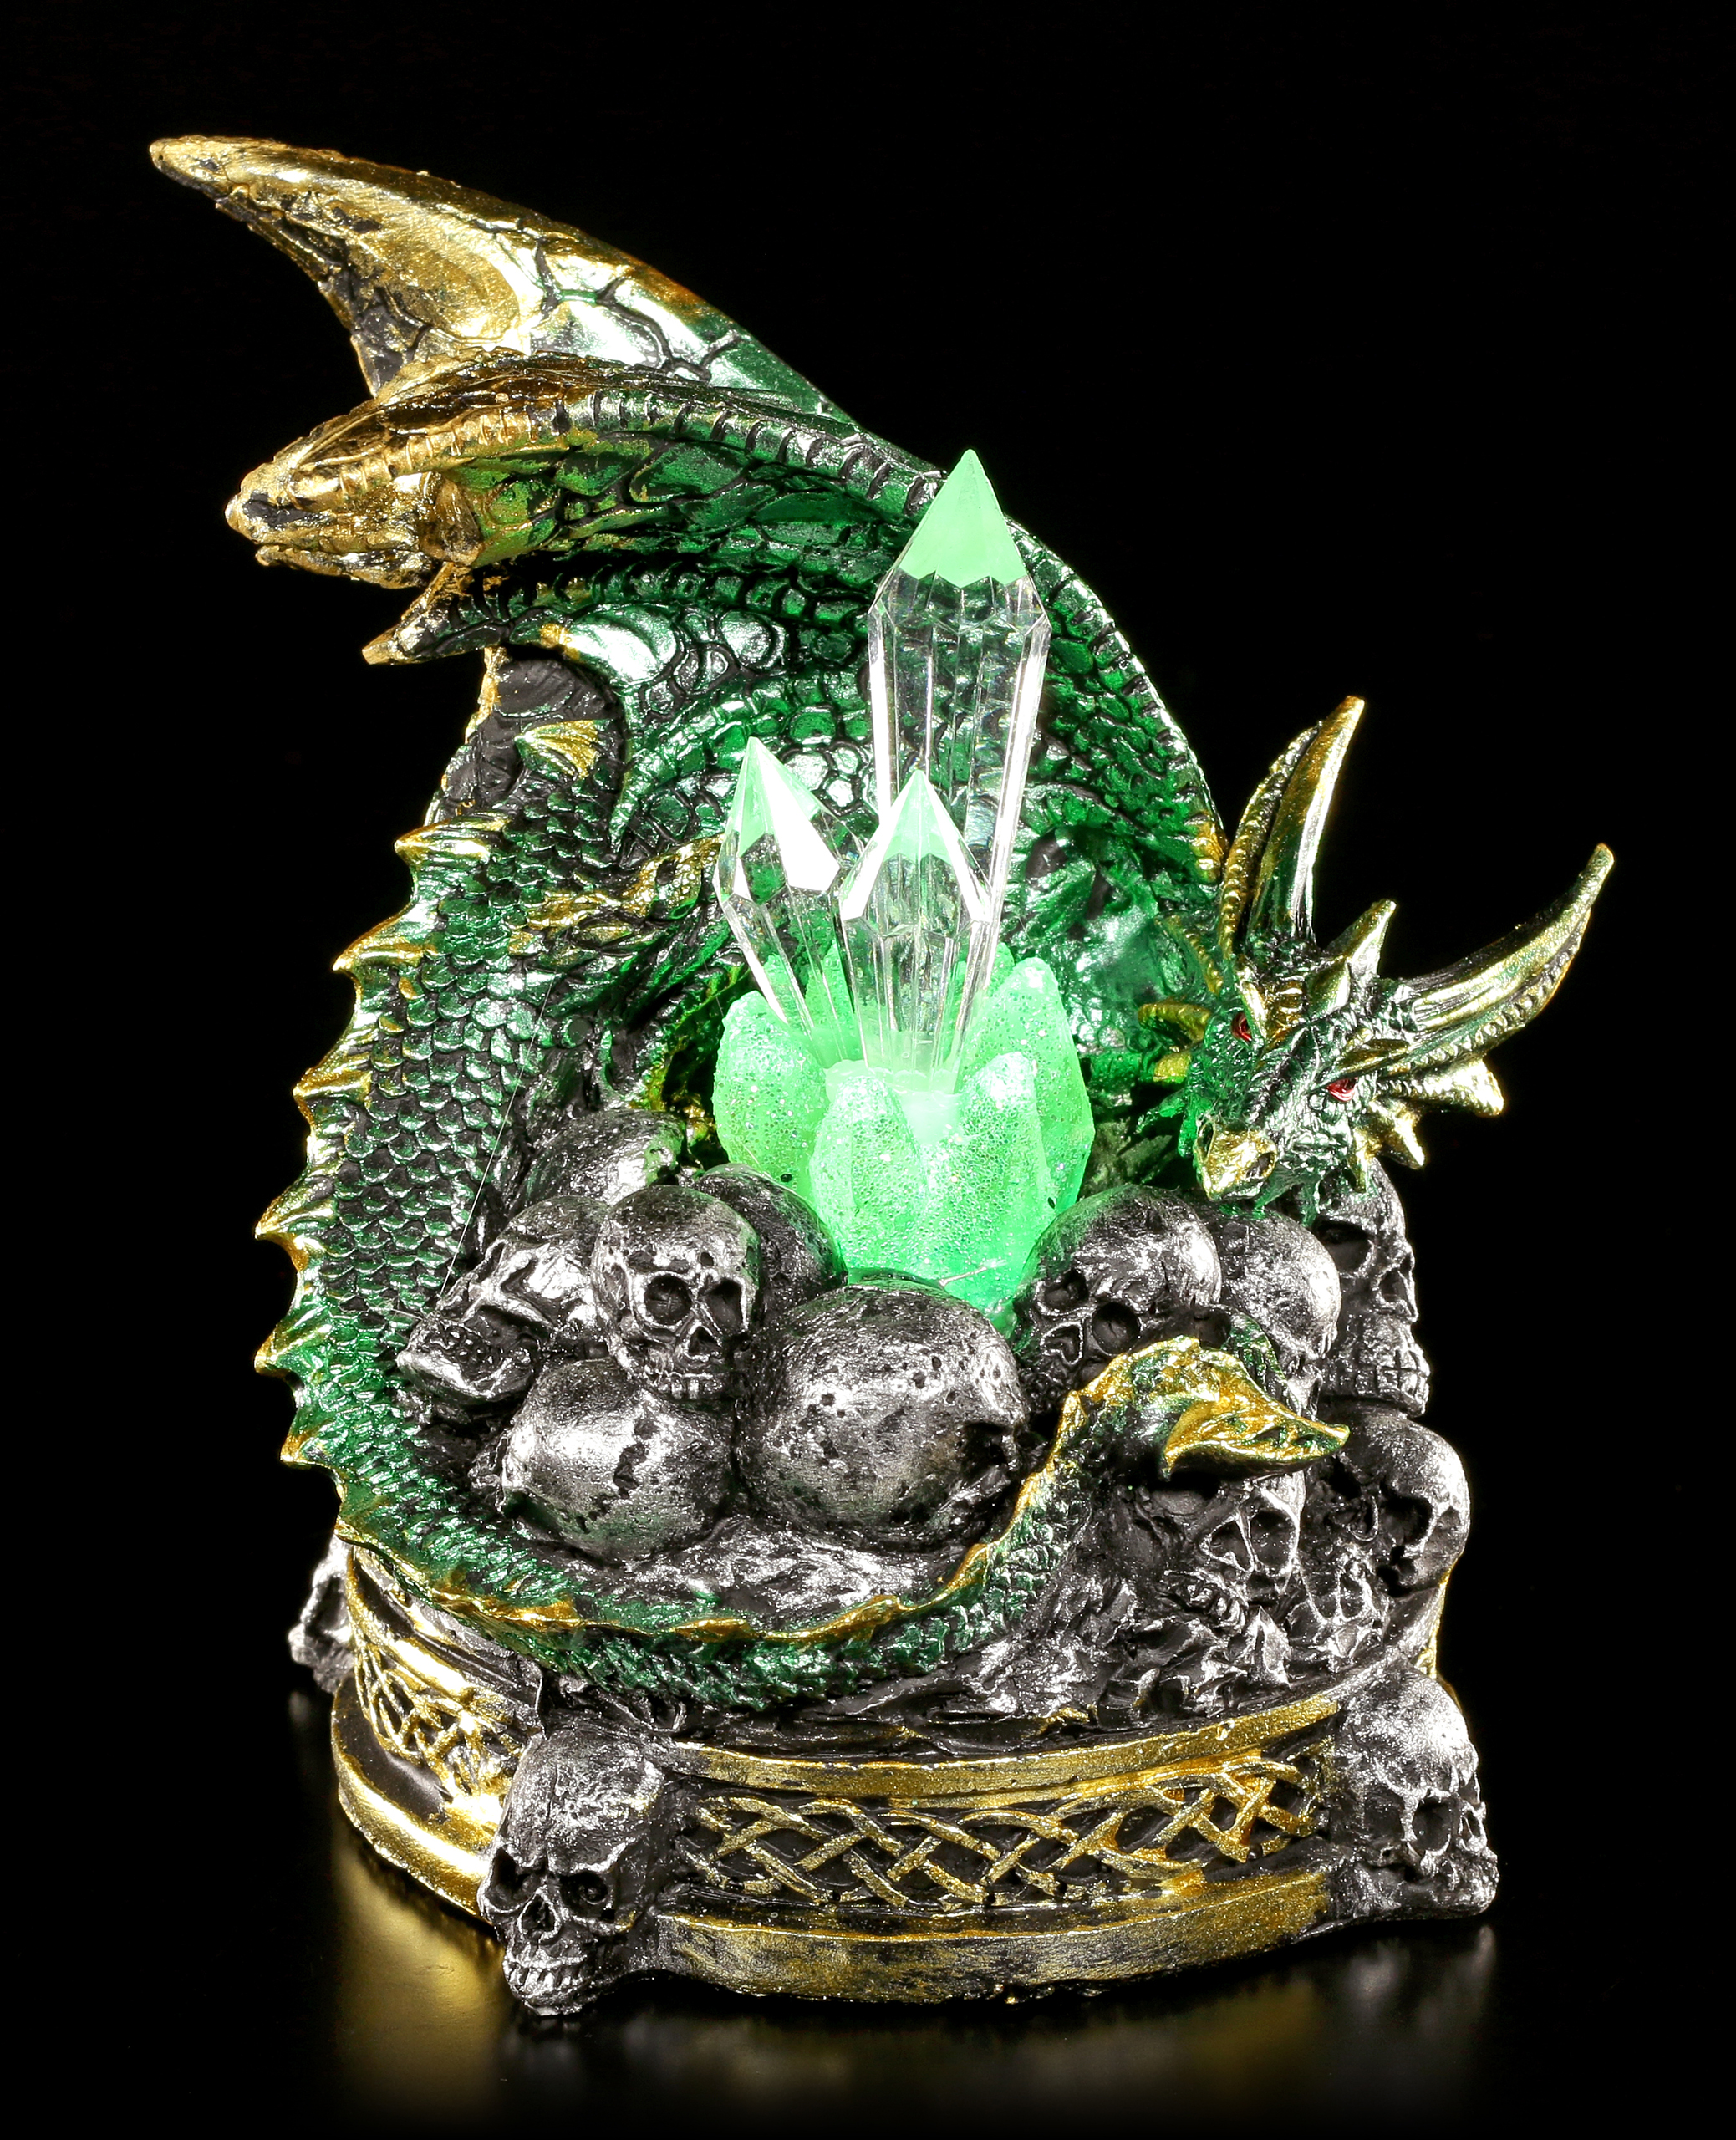 Dragon Figurine with LED Lighting The Crystal Guardian green